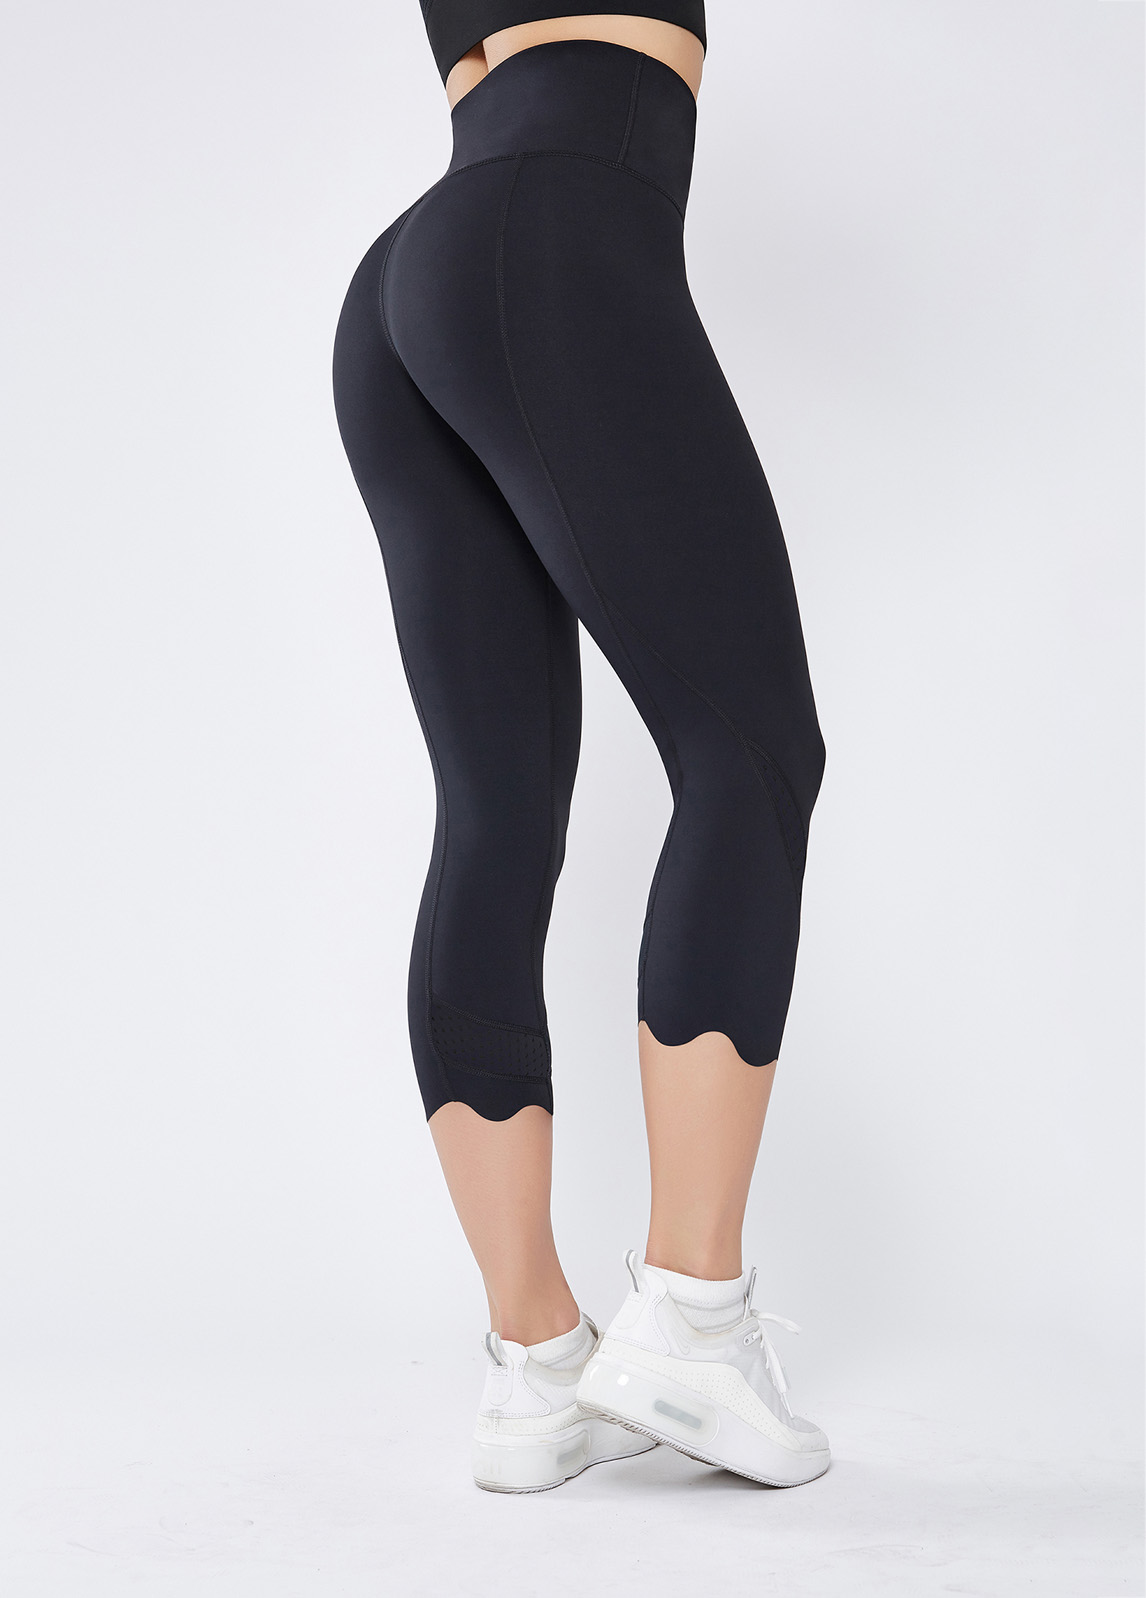 Black Stretch High Waist Quick-drying Breathable Yoga Pants